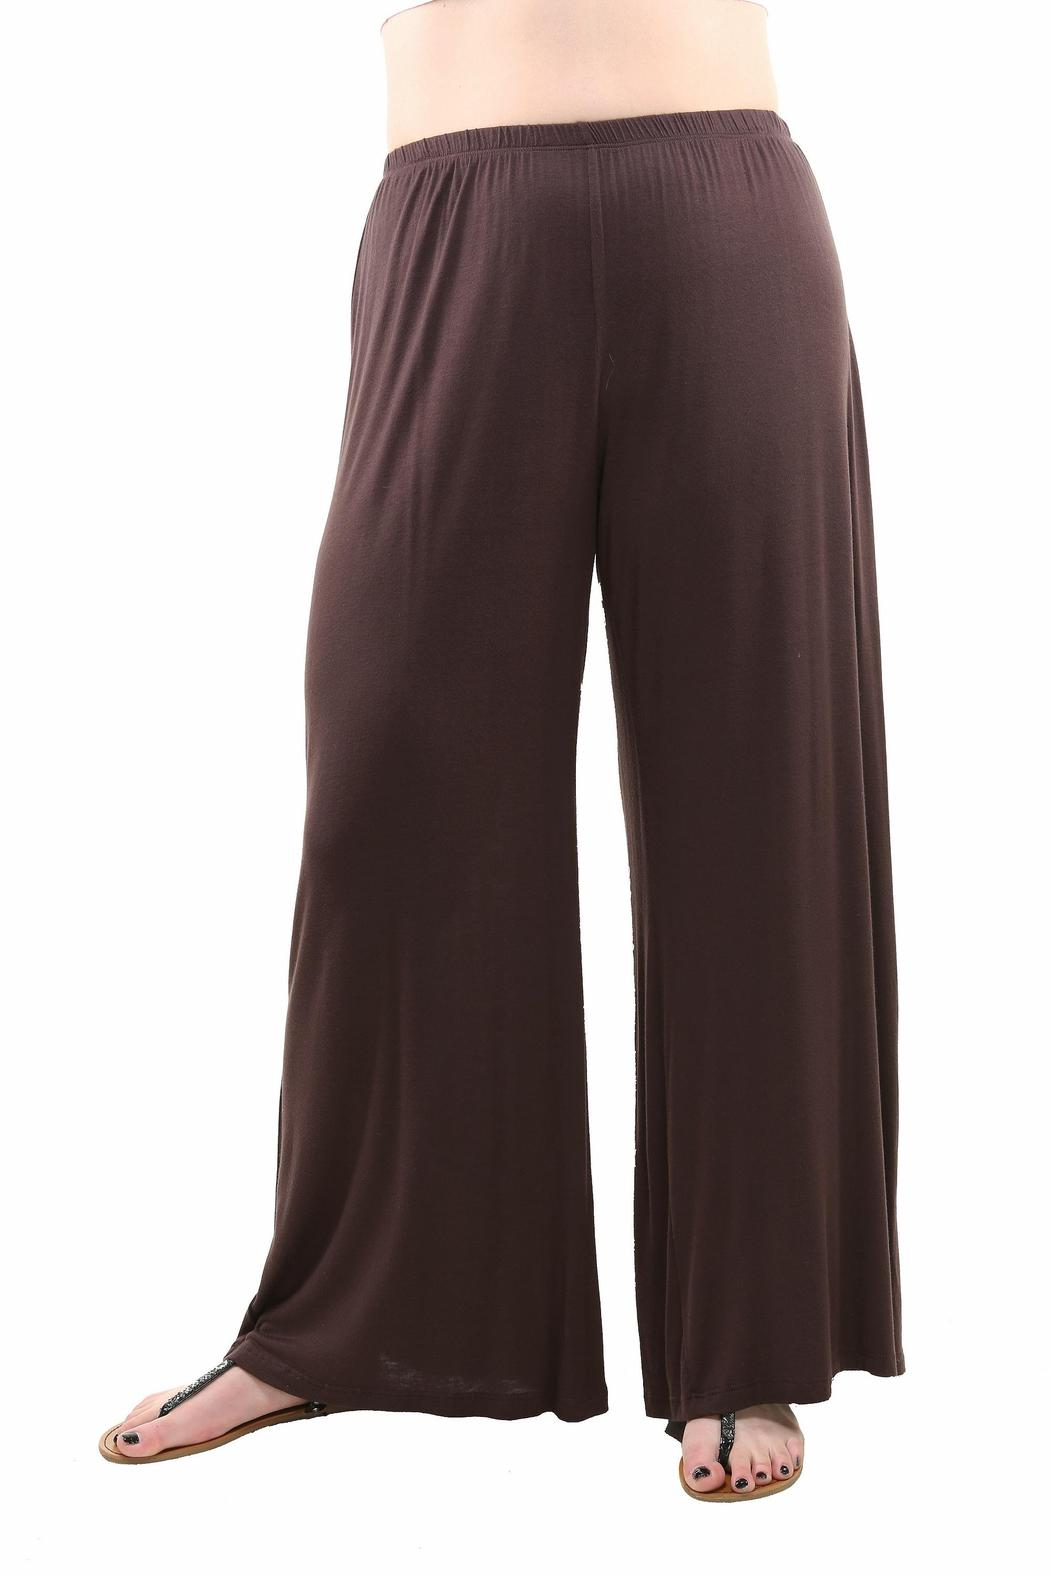 791cb8d75057a 24 7 Comfort Apparel Plus-Size Palazzo Pants from California by The ...